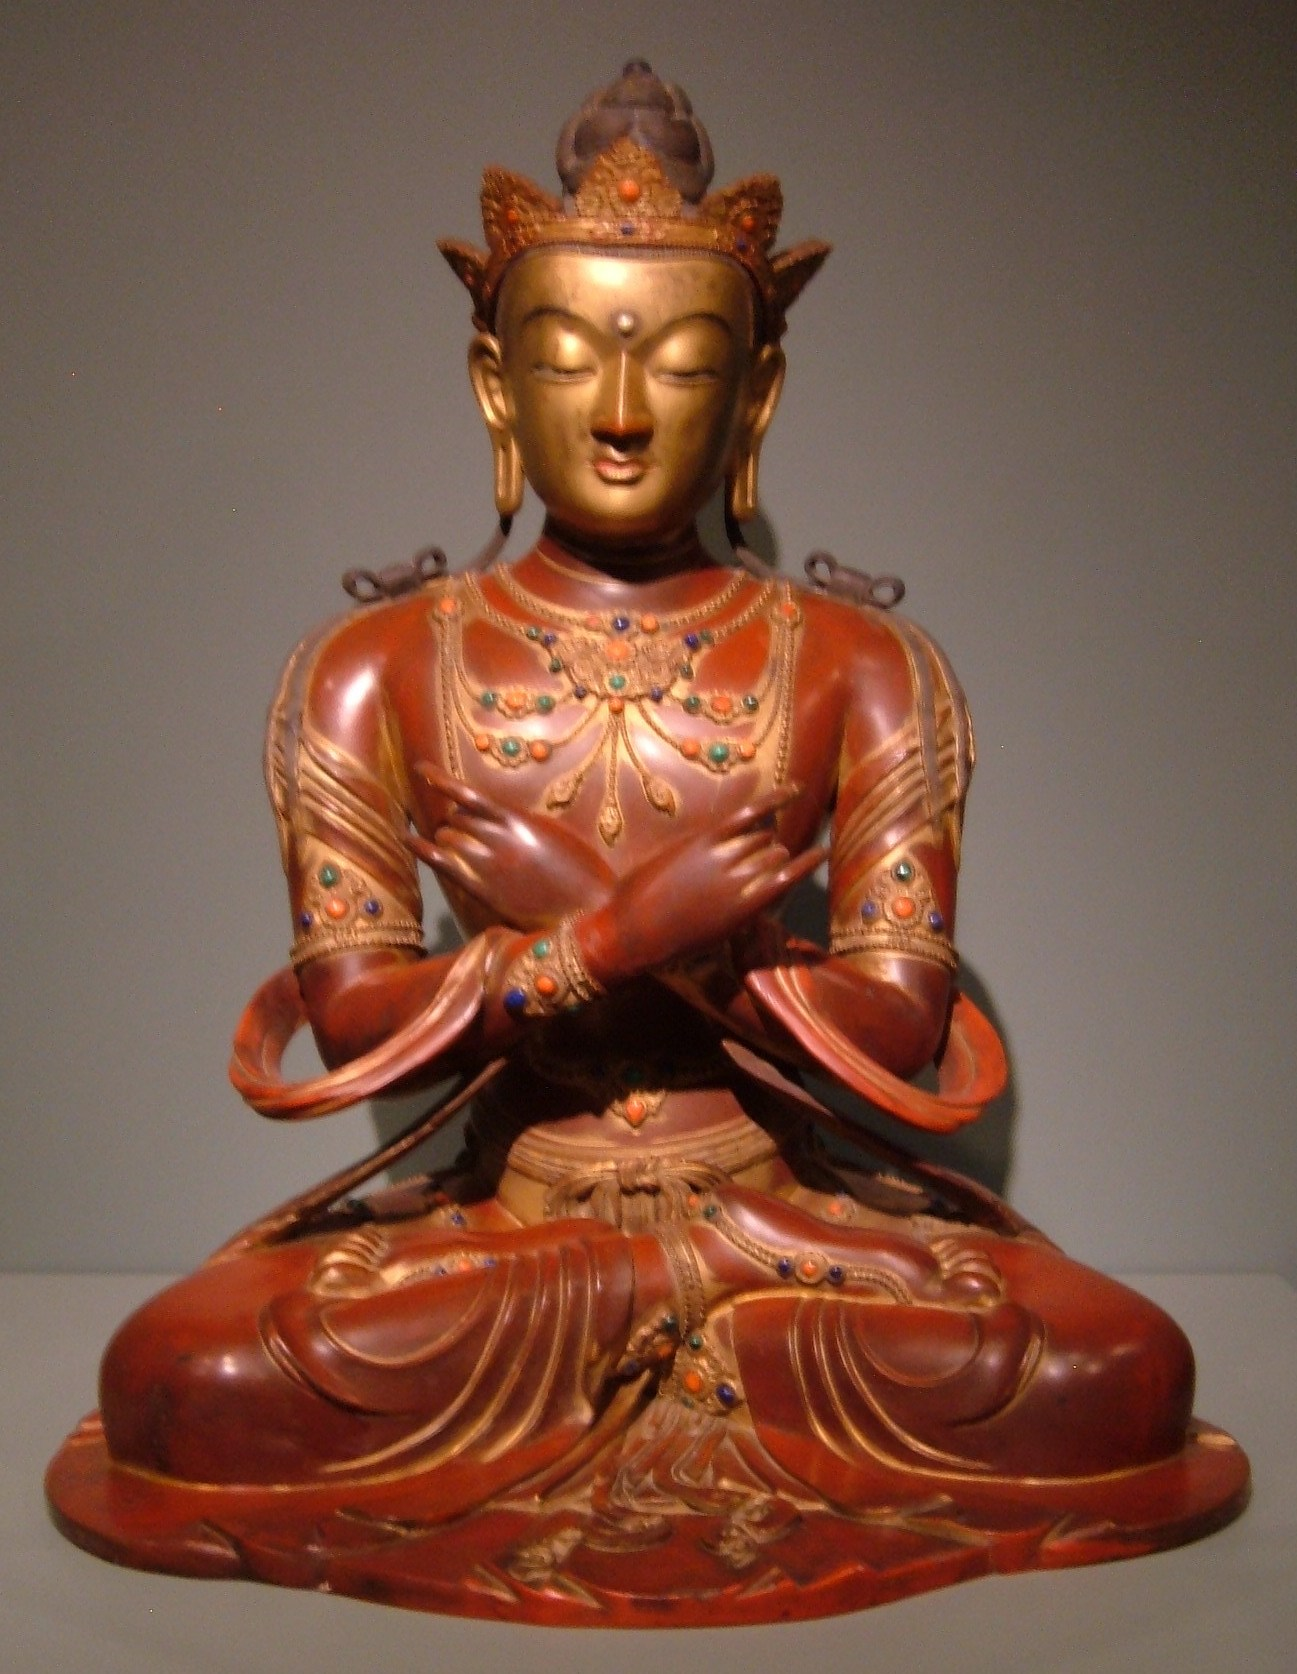 http://upload.wikimedia.org/wikipedia/commons/3/3c/Vajradhara_statue_Asian_Art_Museum_SF.JPG